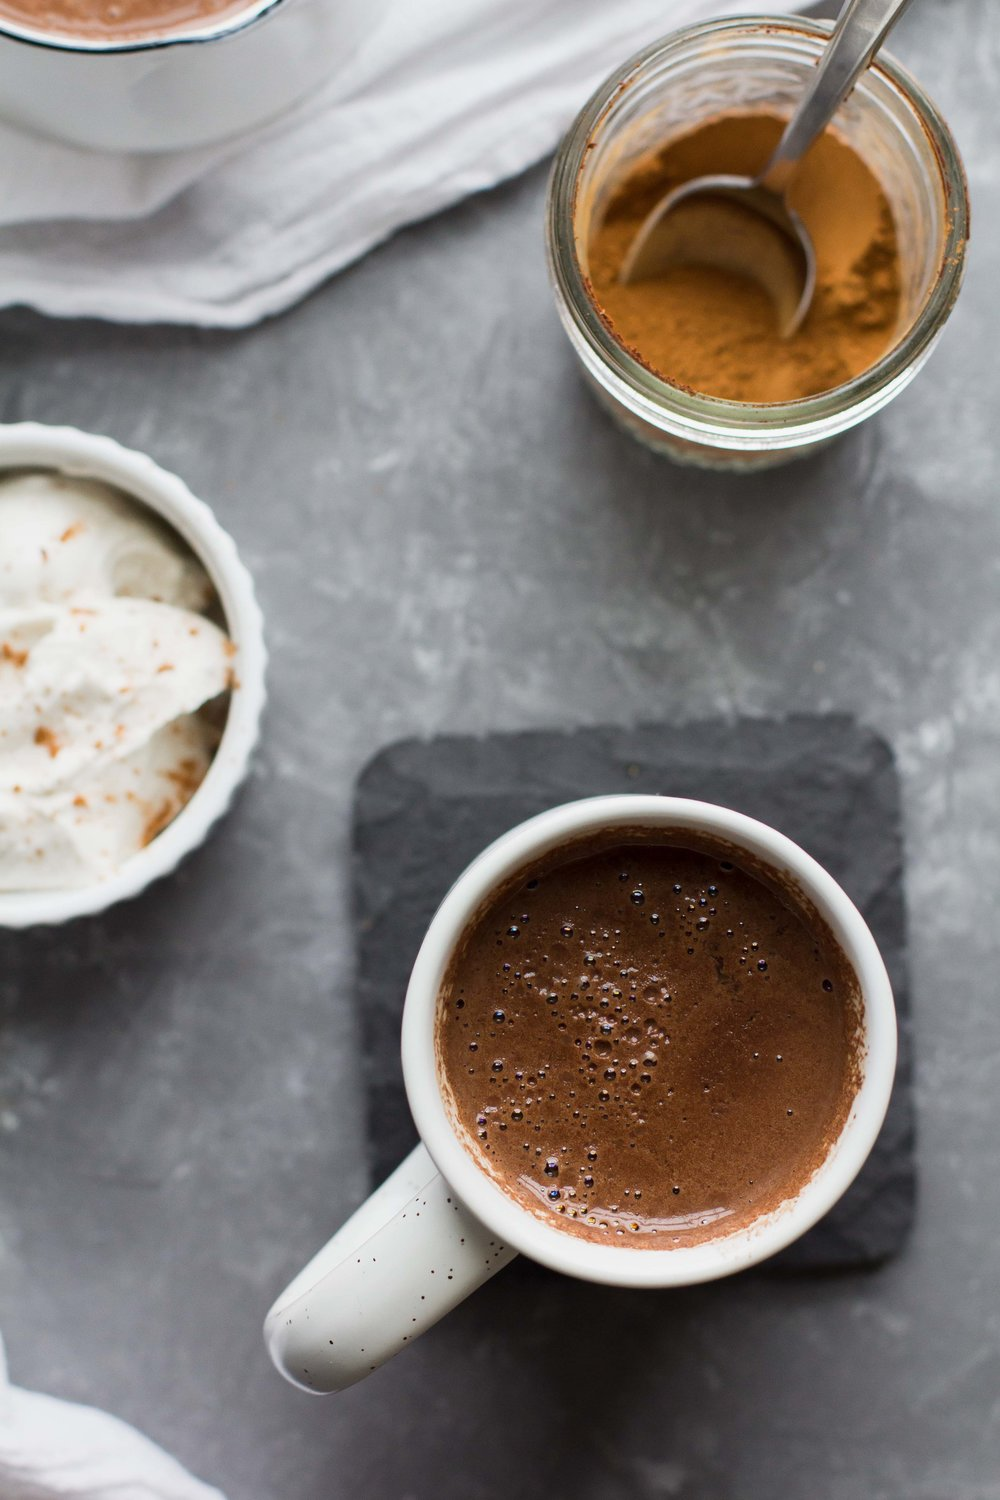 (Paleo + Vegan) Maple-Cinnamon Hot Chocolate | Sarah J. Hauser